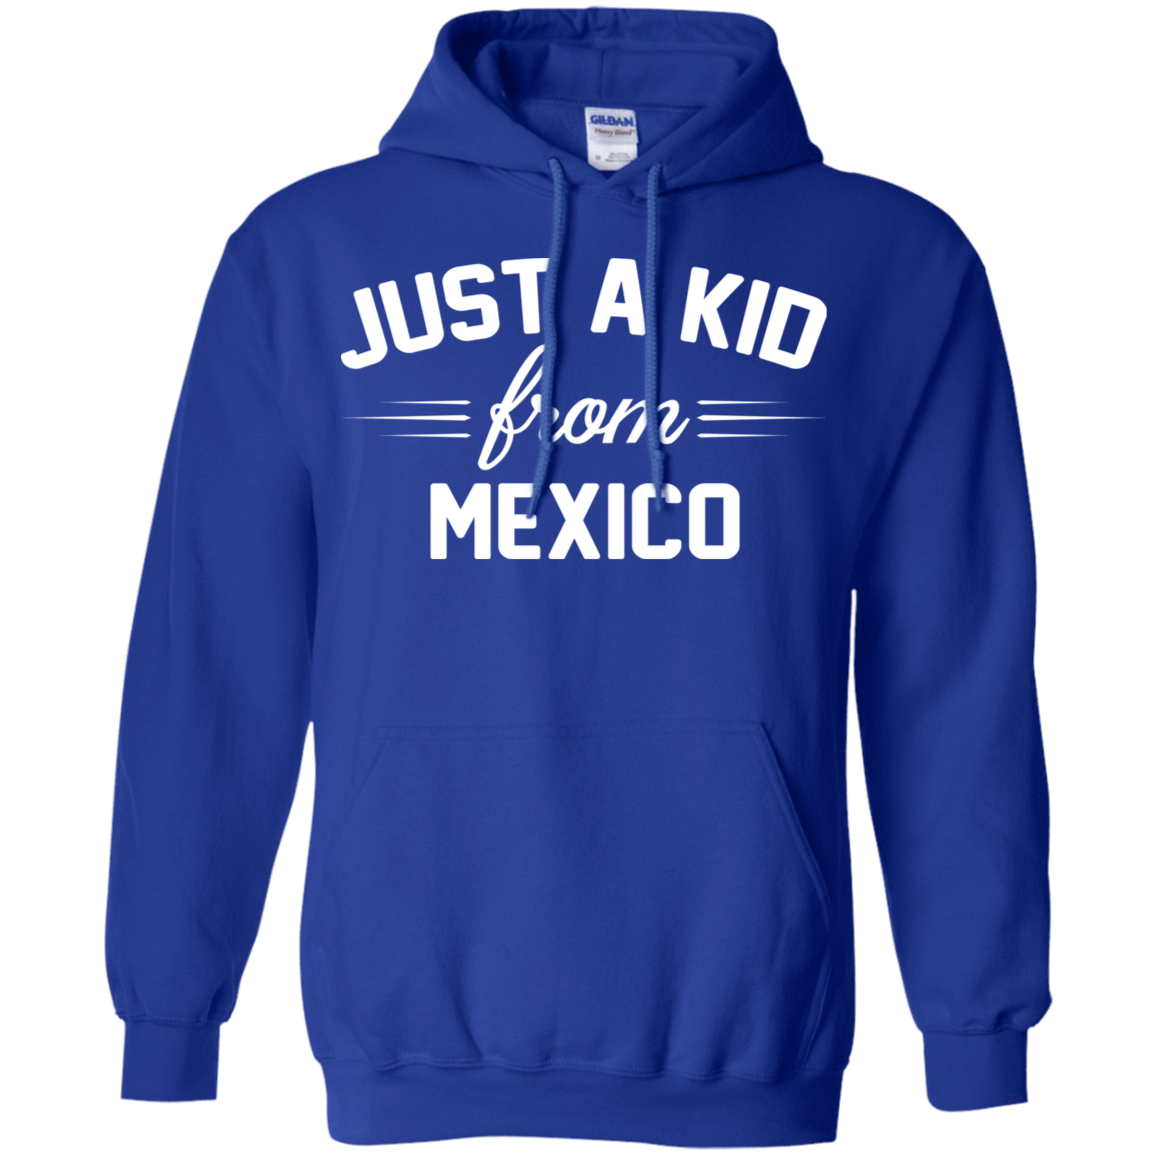 Just a Kid Store | Mexico T-Shirts, Hoodie, Tank 541-4765-72091592-23175 - Tee Ript